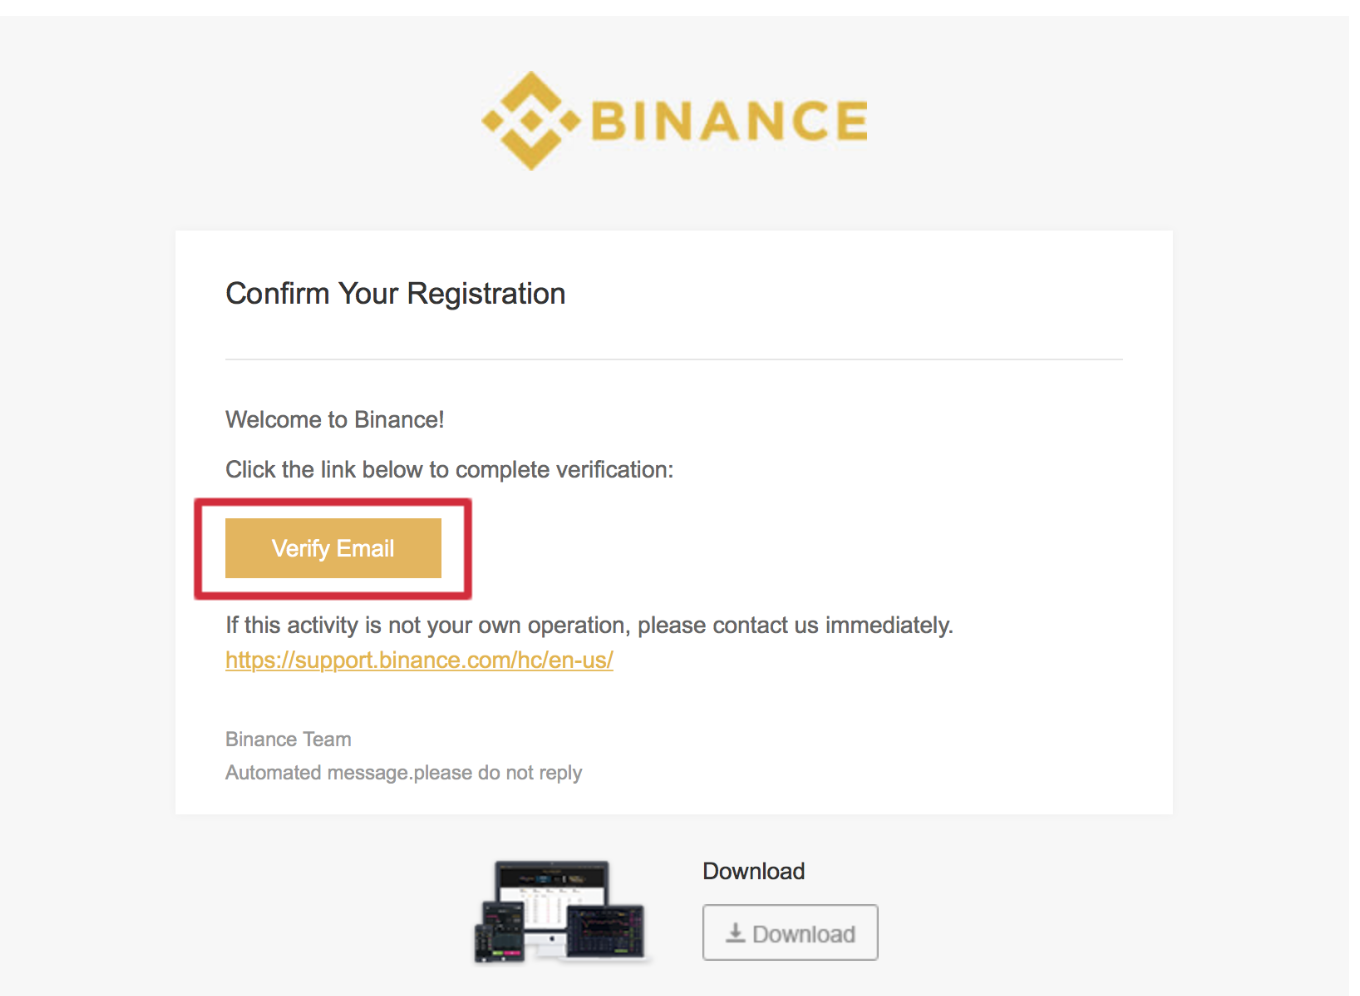 binance confirm registration